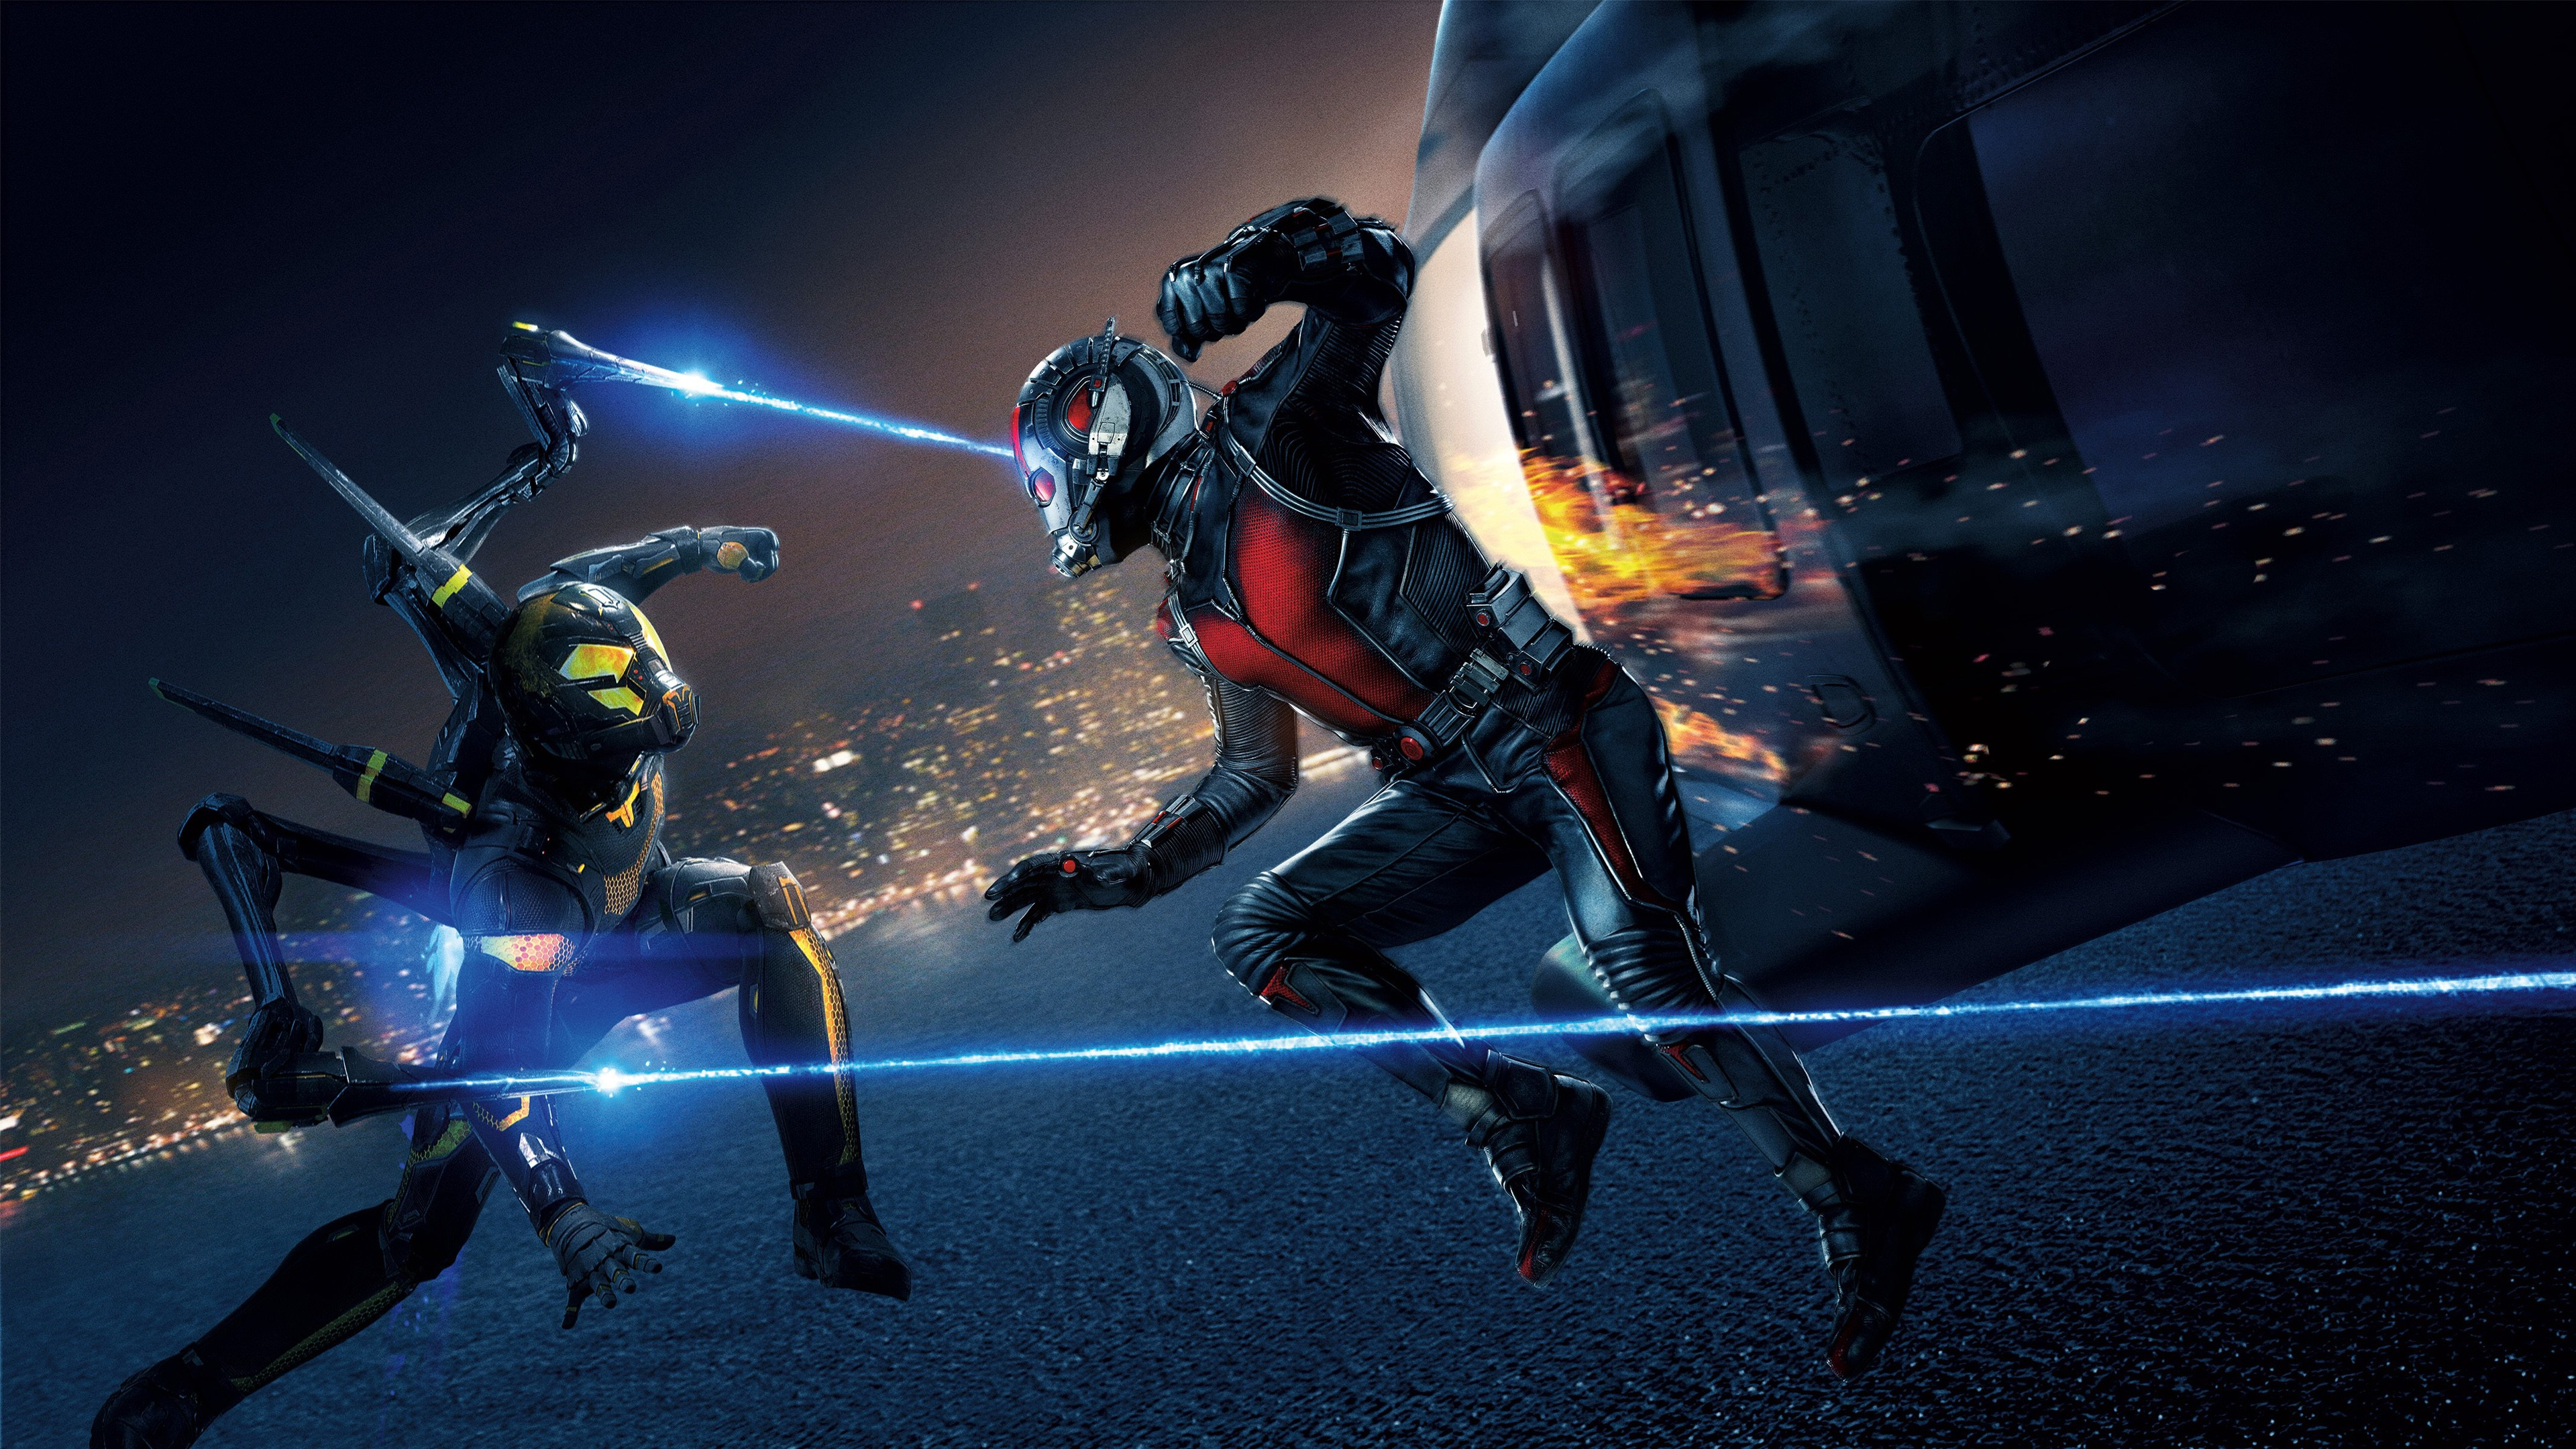 Yellowjacket Ant Man Movie Wallpaper   New HD Wallpapers 3840x2160